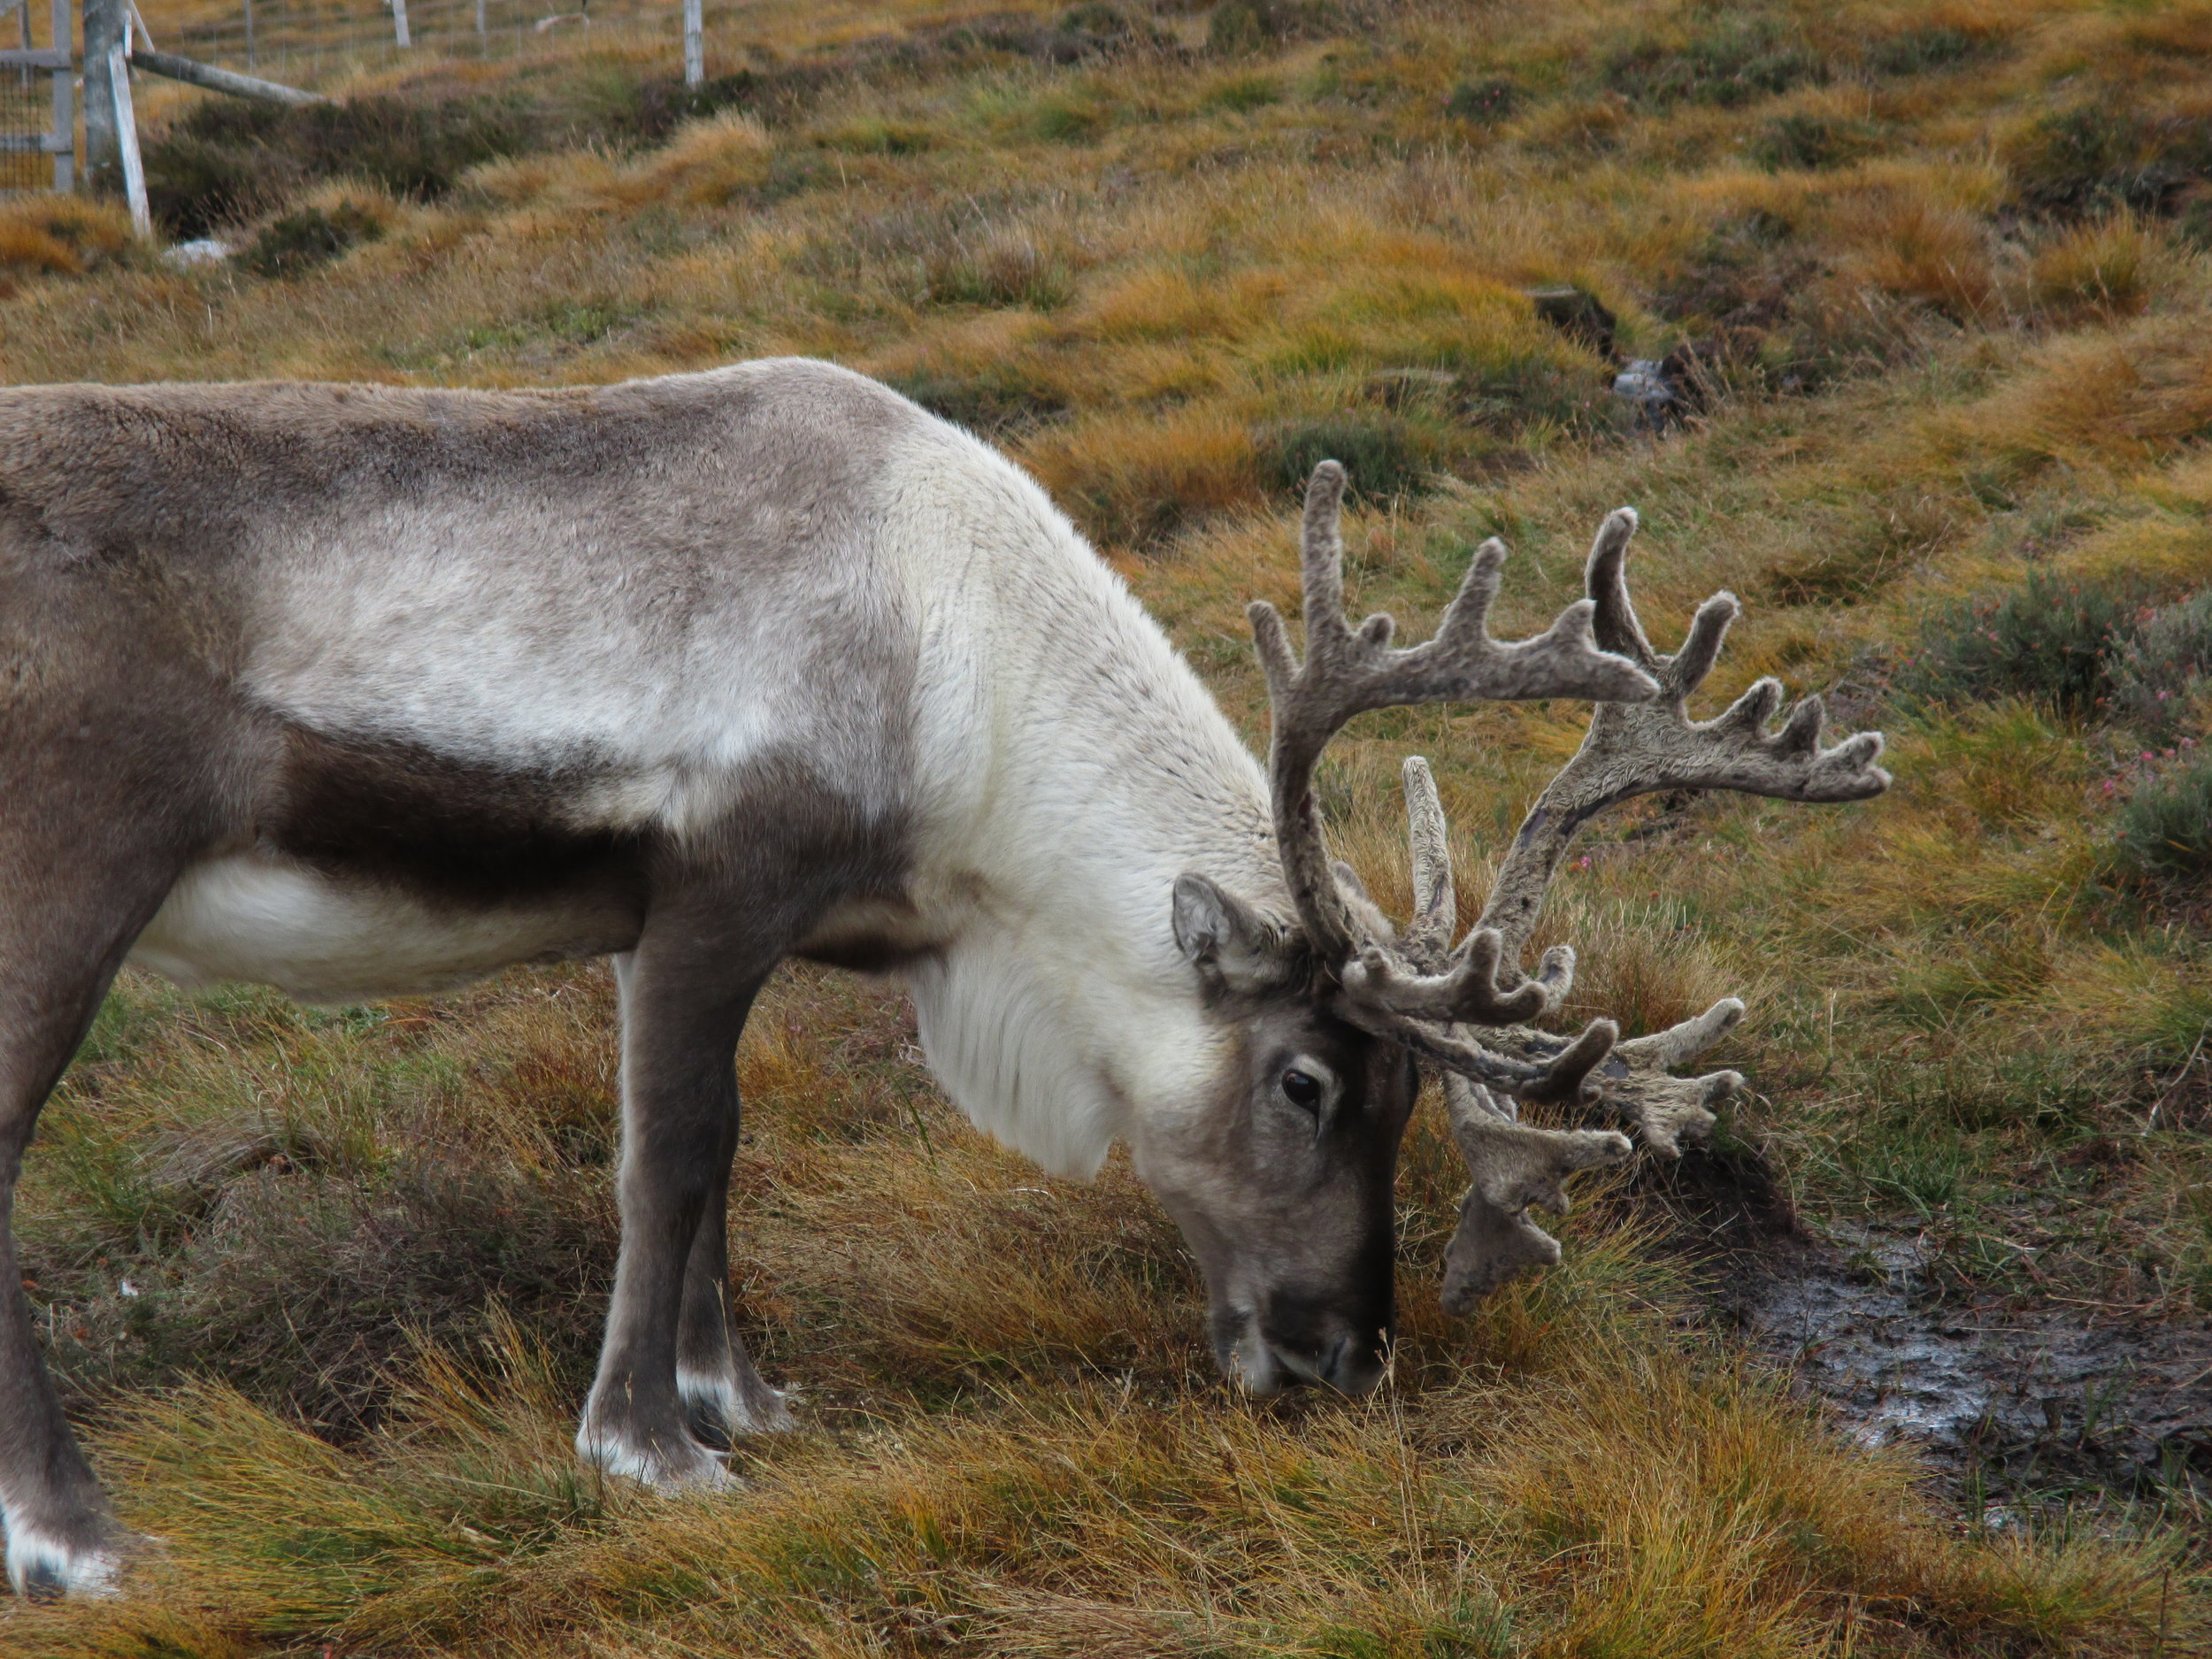 Being with the Reindeer on the land was a favorite outing for our retreat in Sept/Oct. 2018